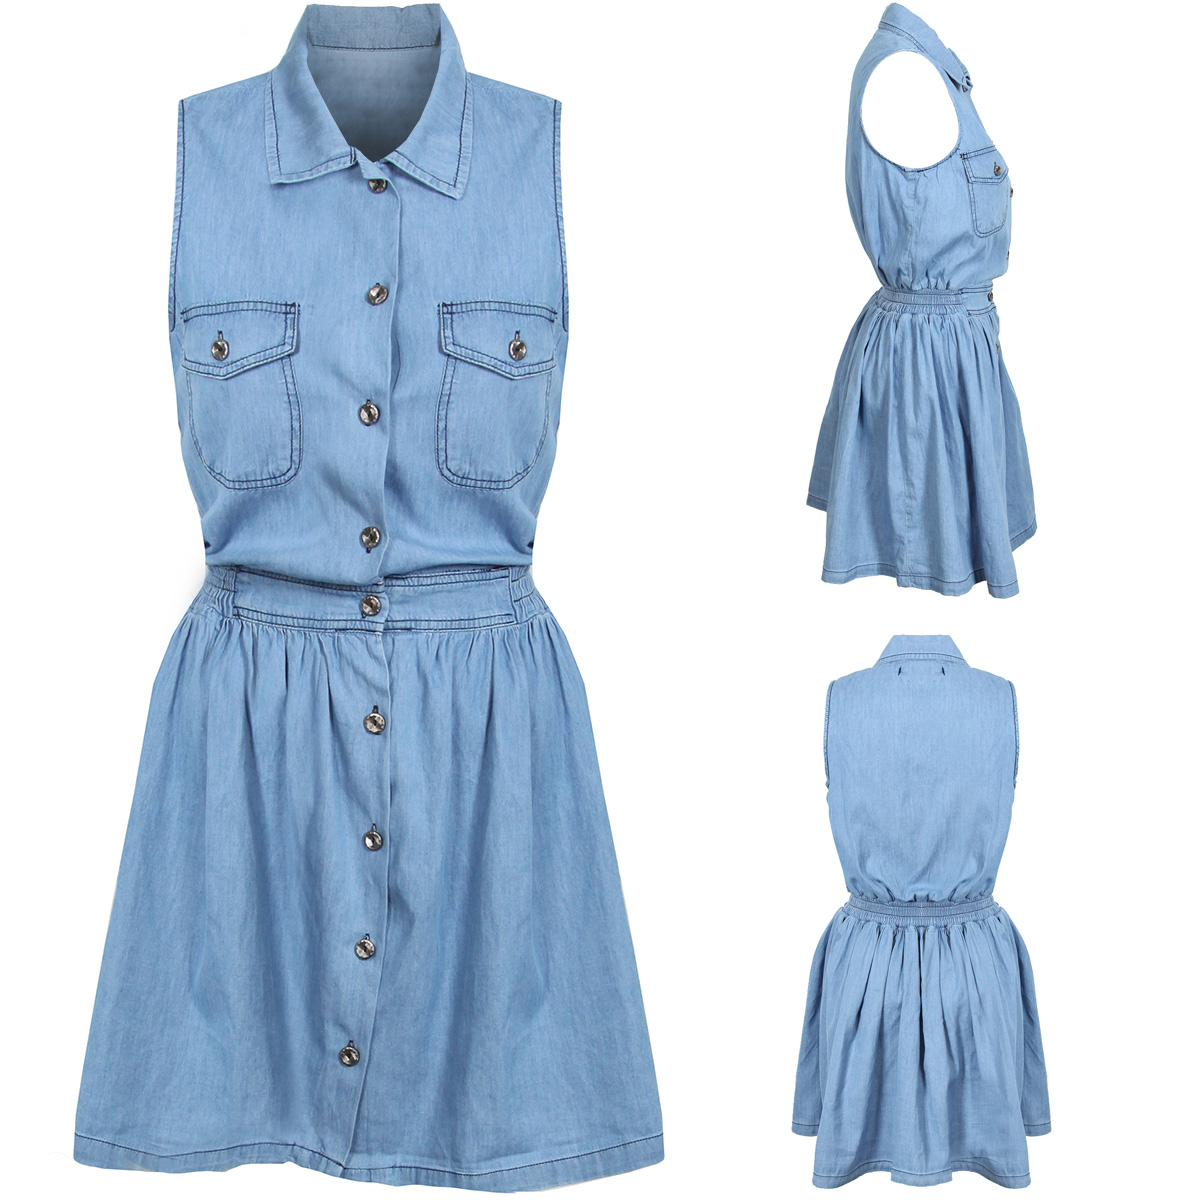 Creative Plus Size Vintage Denim Dress Blue Jeans Dressesin Dresses From Women